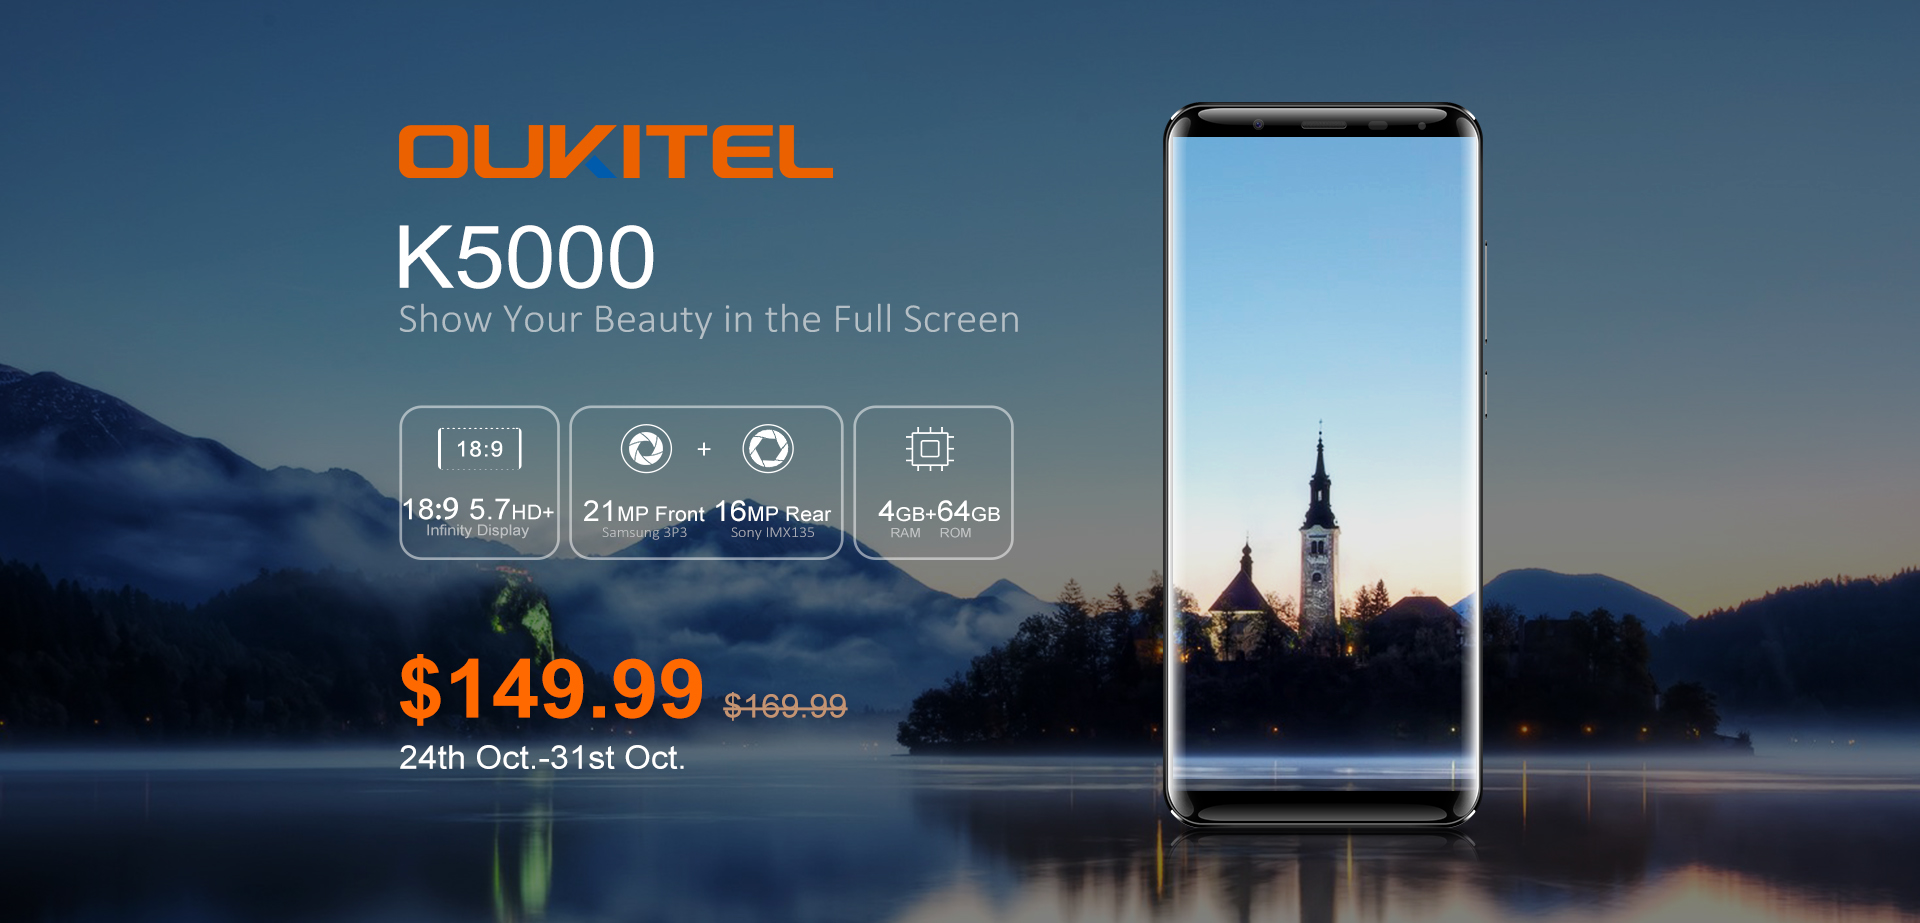 Smartphone OUKITEL K5000 available for pre-order